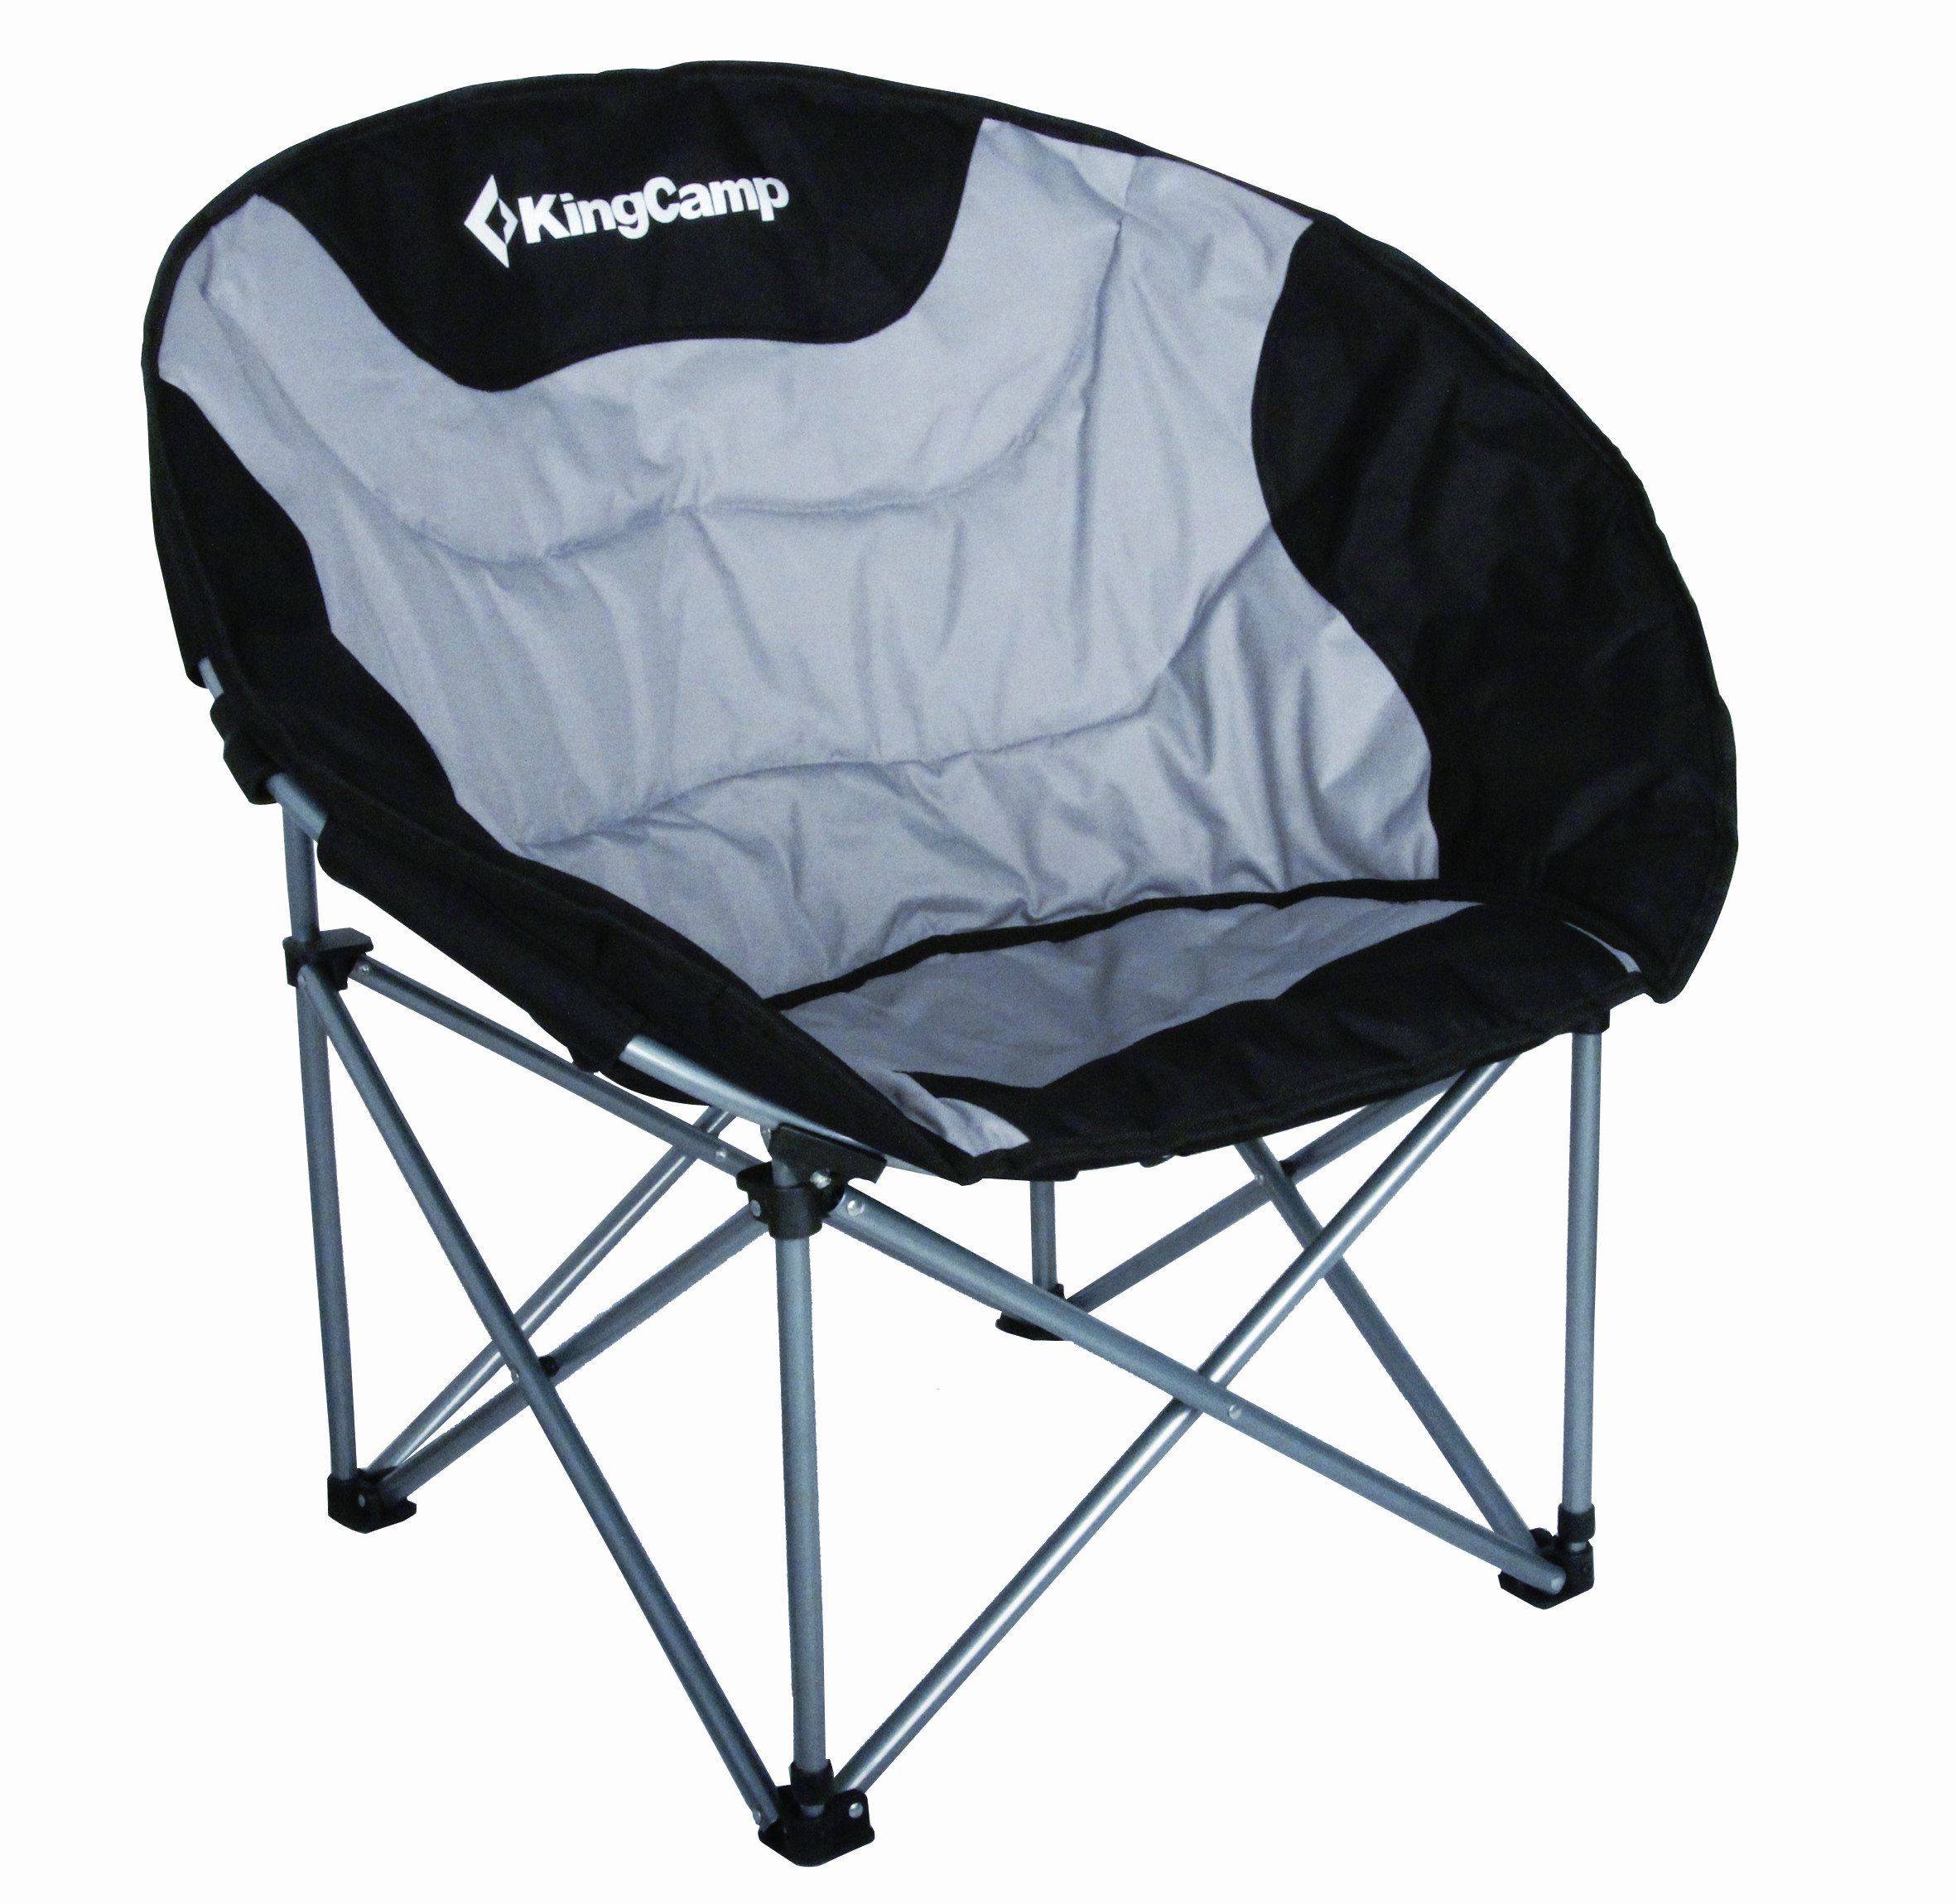 ������ King camp 3889 deluxe moon chair